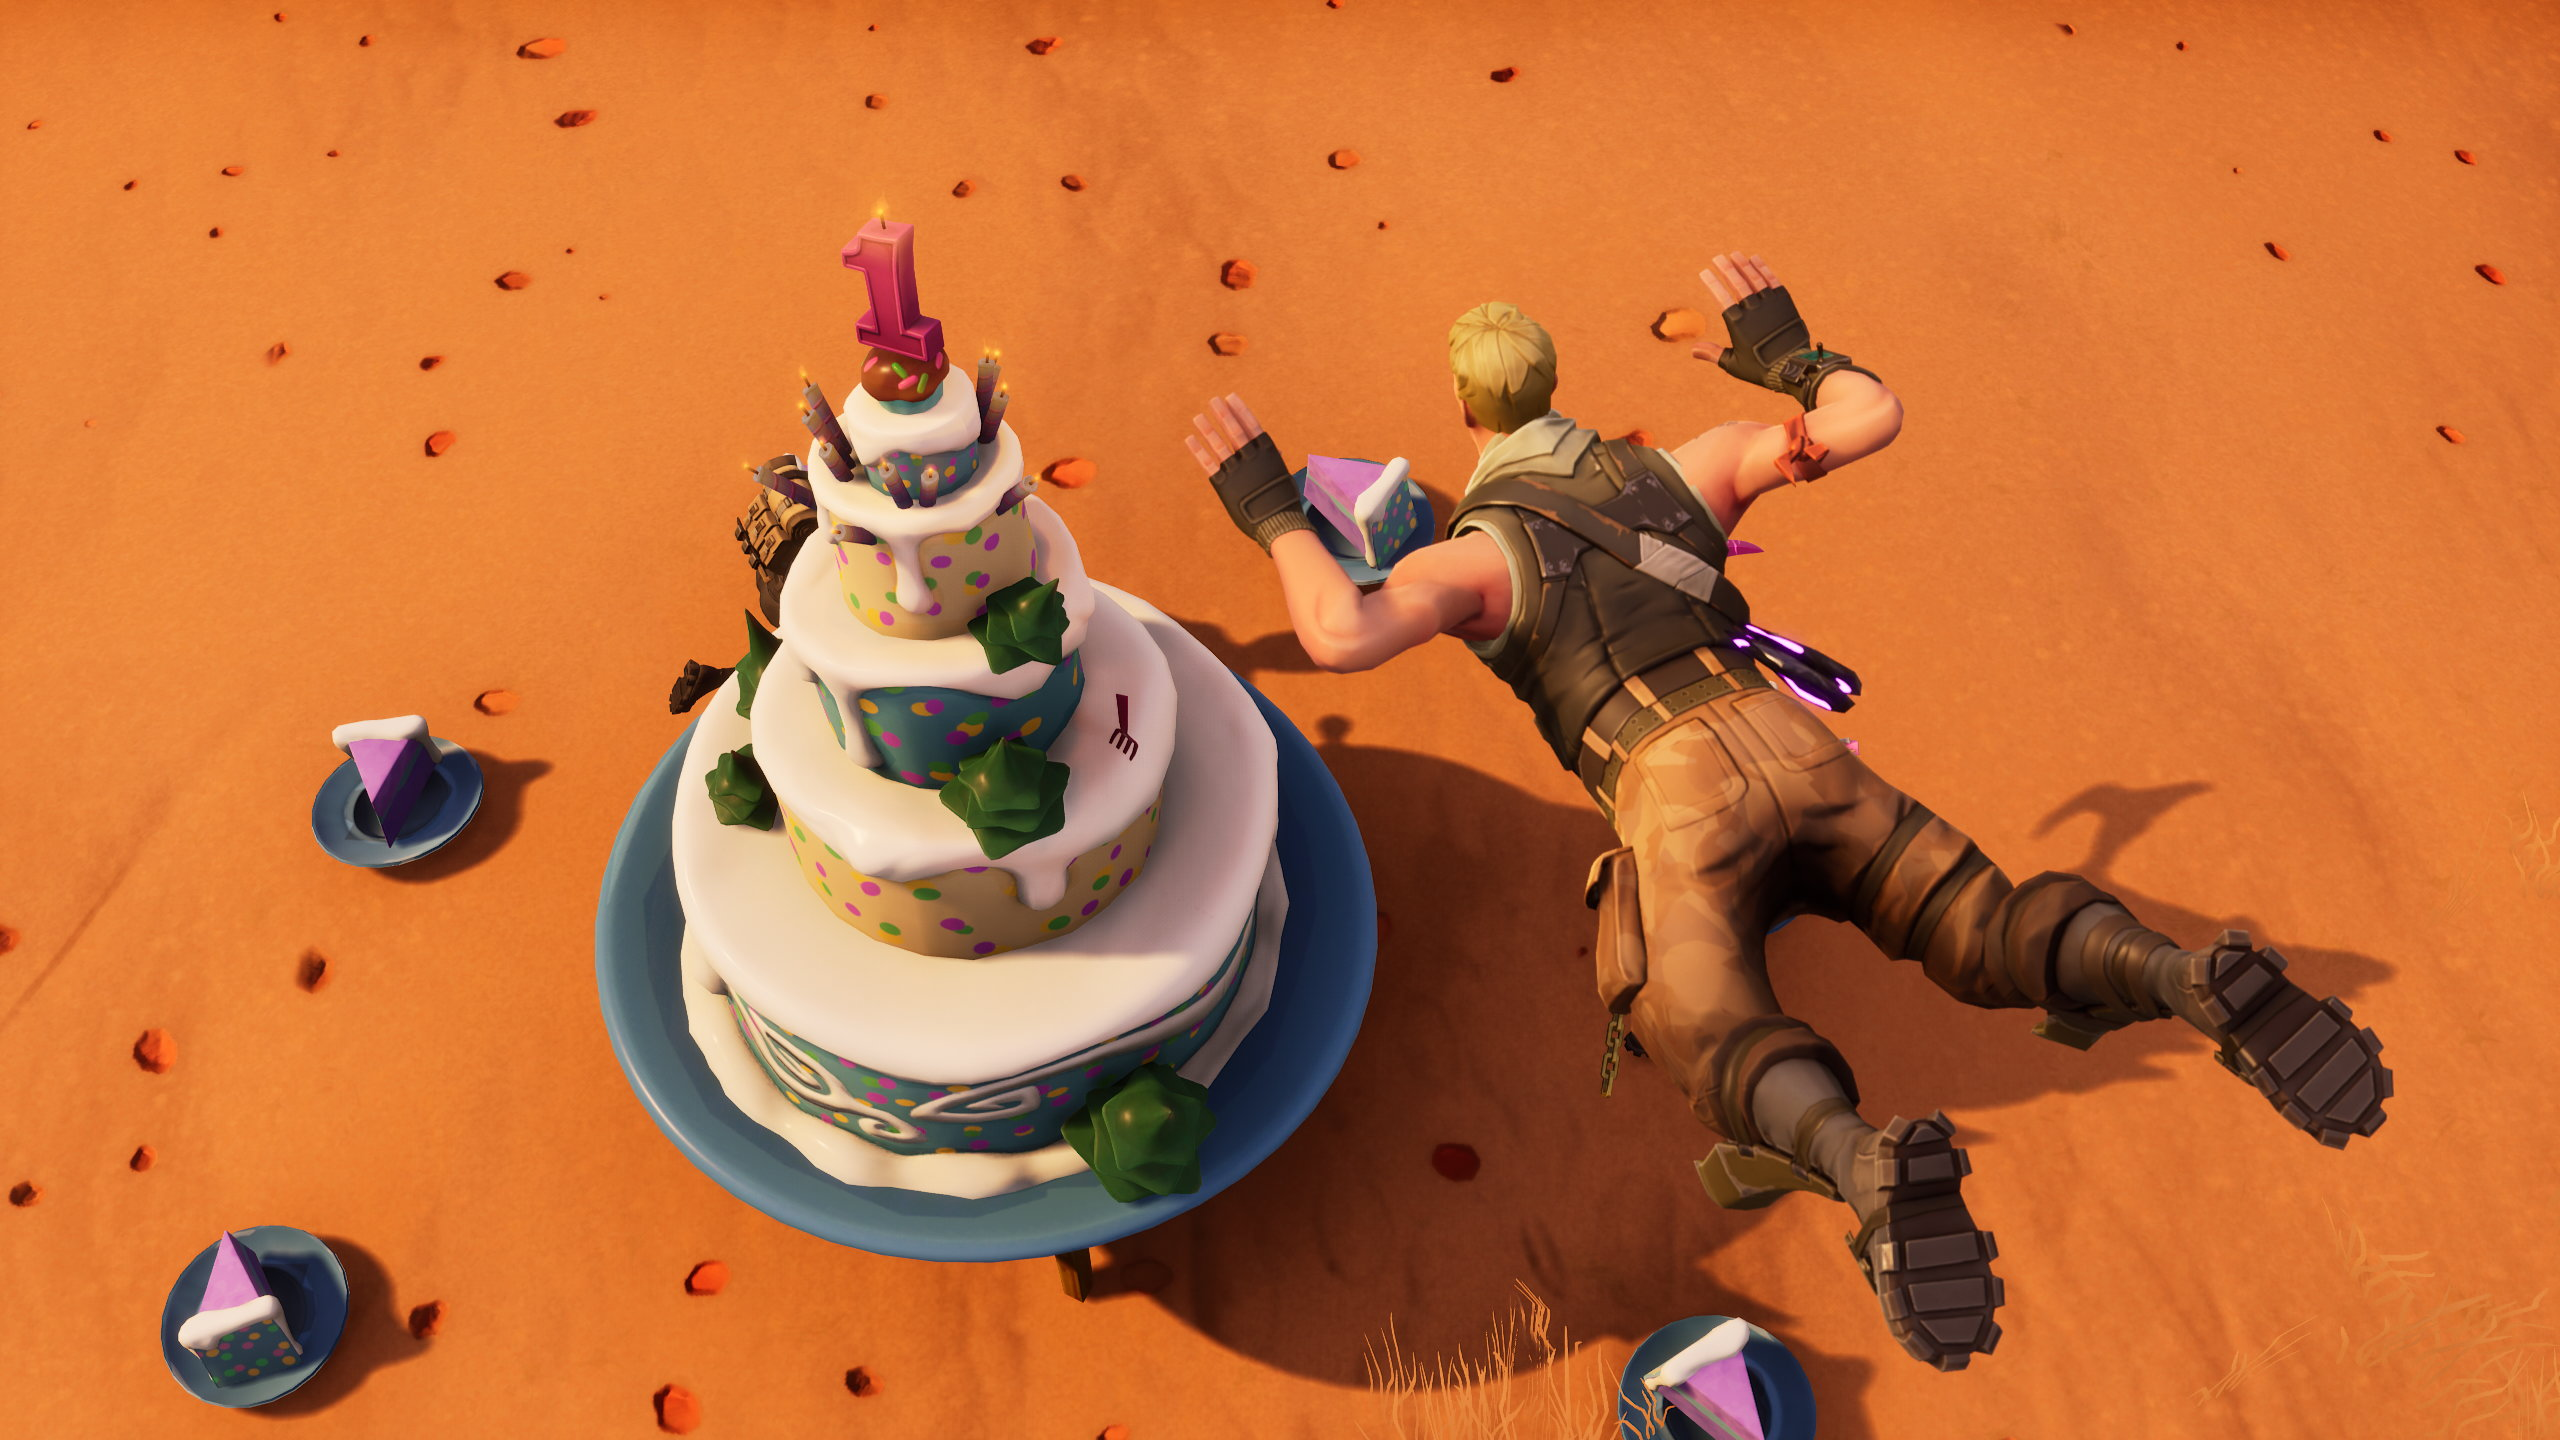 10 Bday Cake Fortnite Fortnite Season 4 Week 9 Map Location